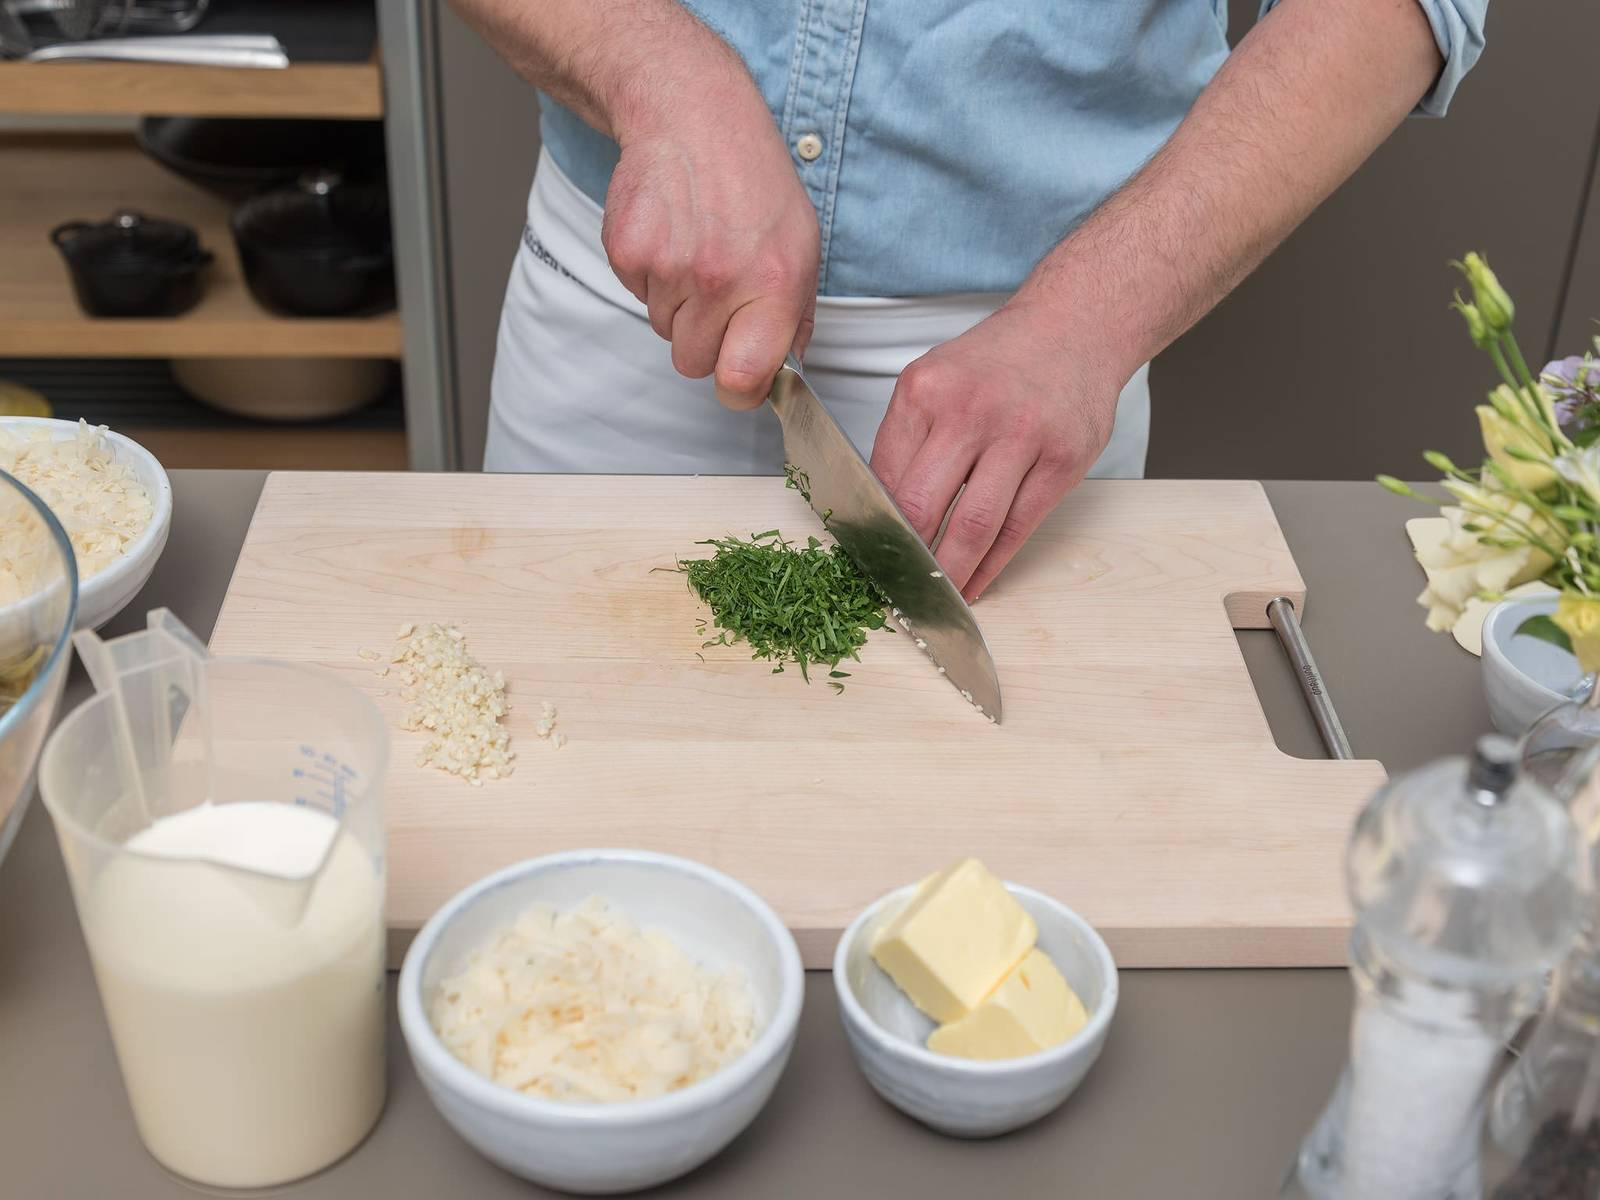 Peel and chop garlic. Finely chop parsley.